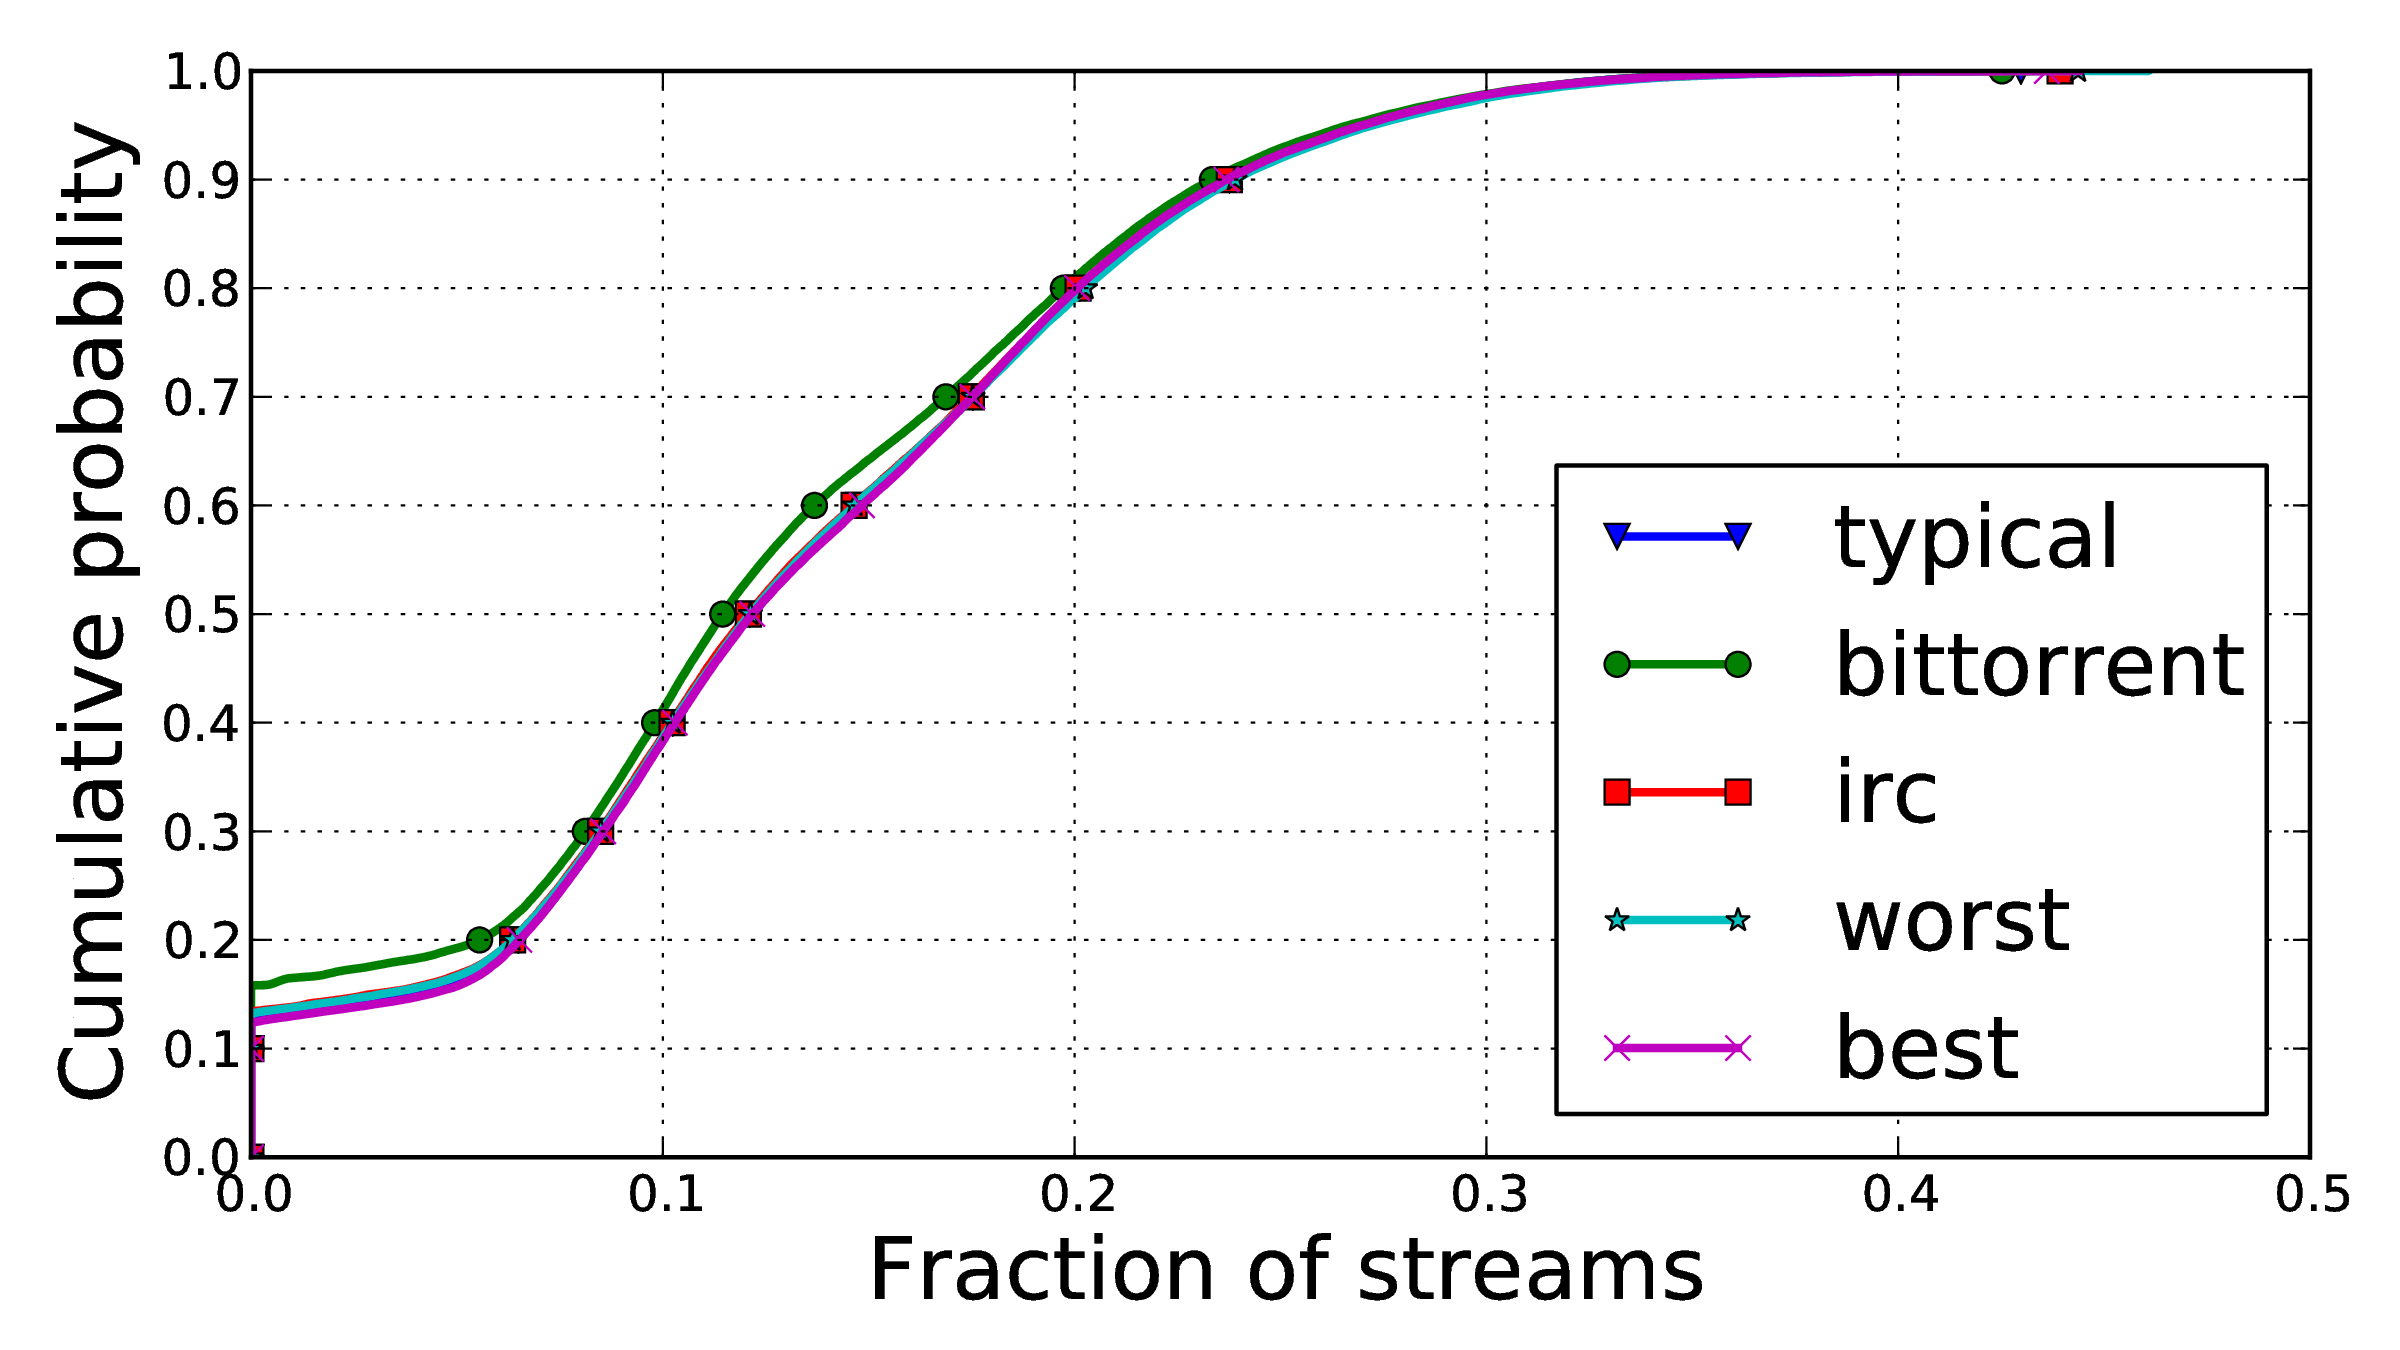 5 times as many streams as the Typical model and over 50 times as many as the IRC model.